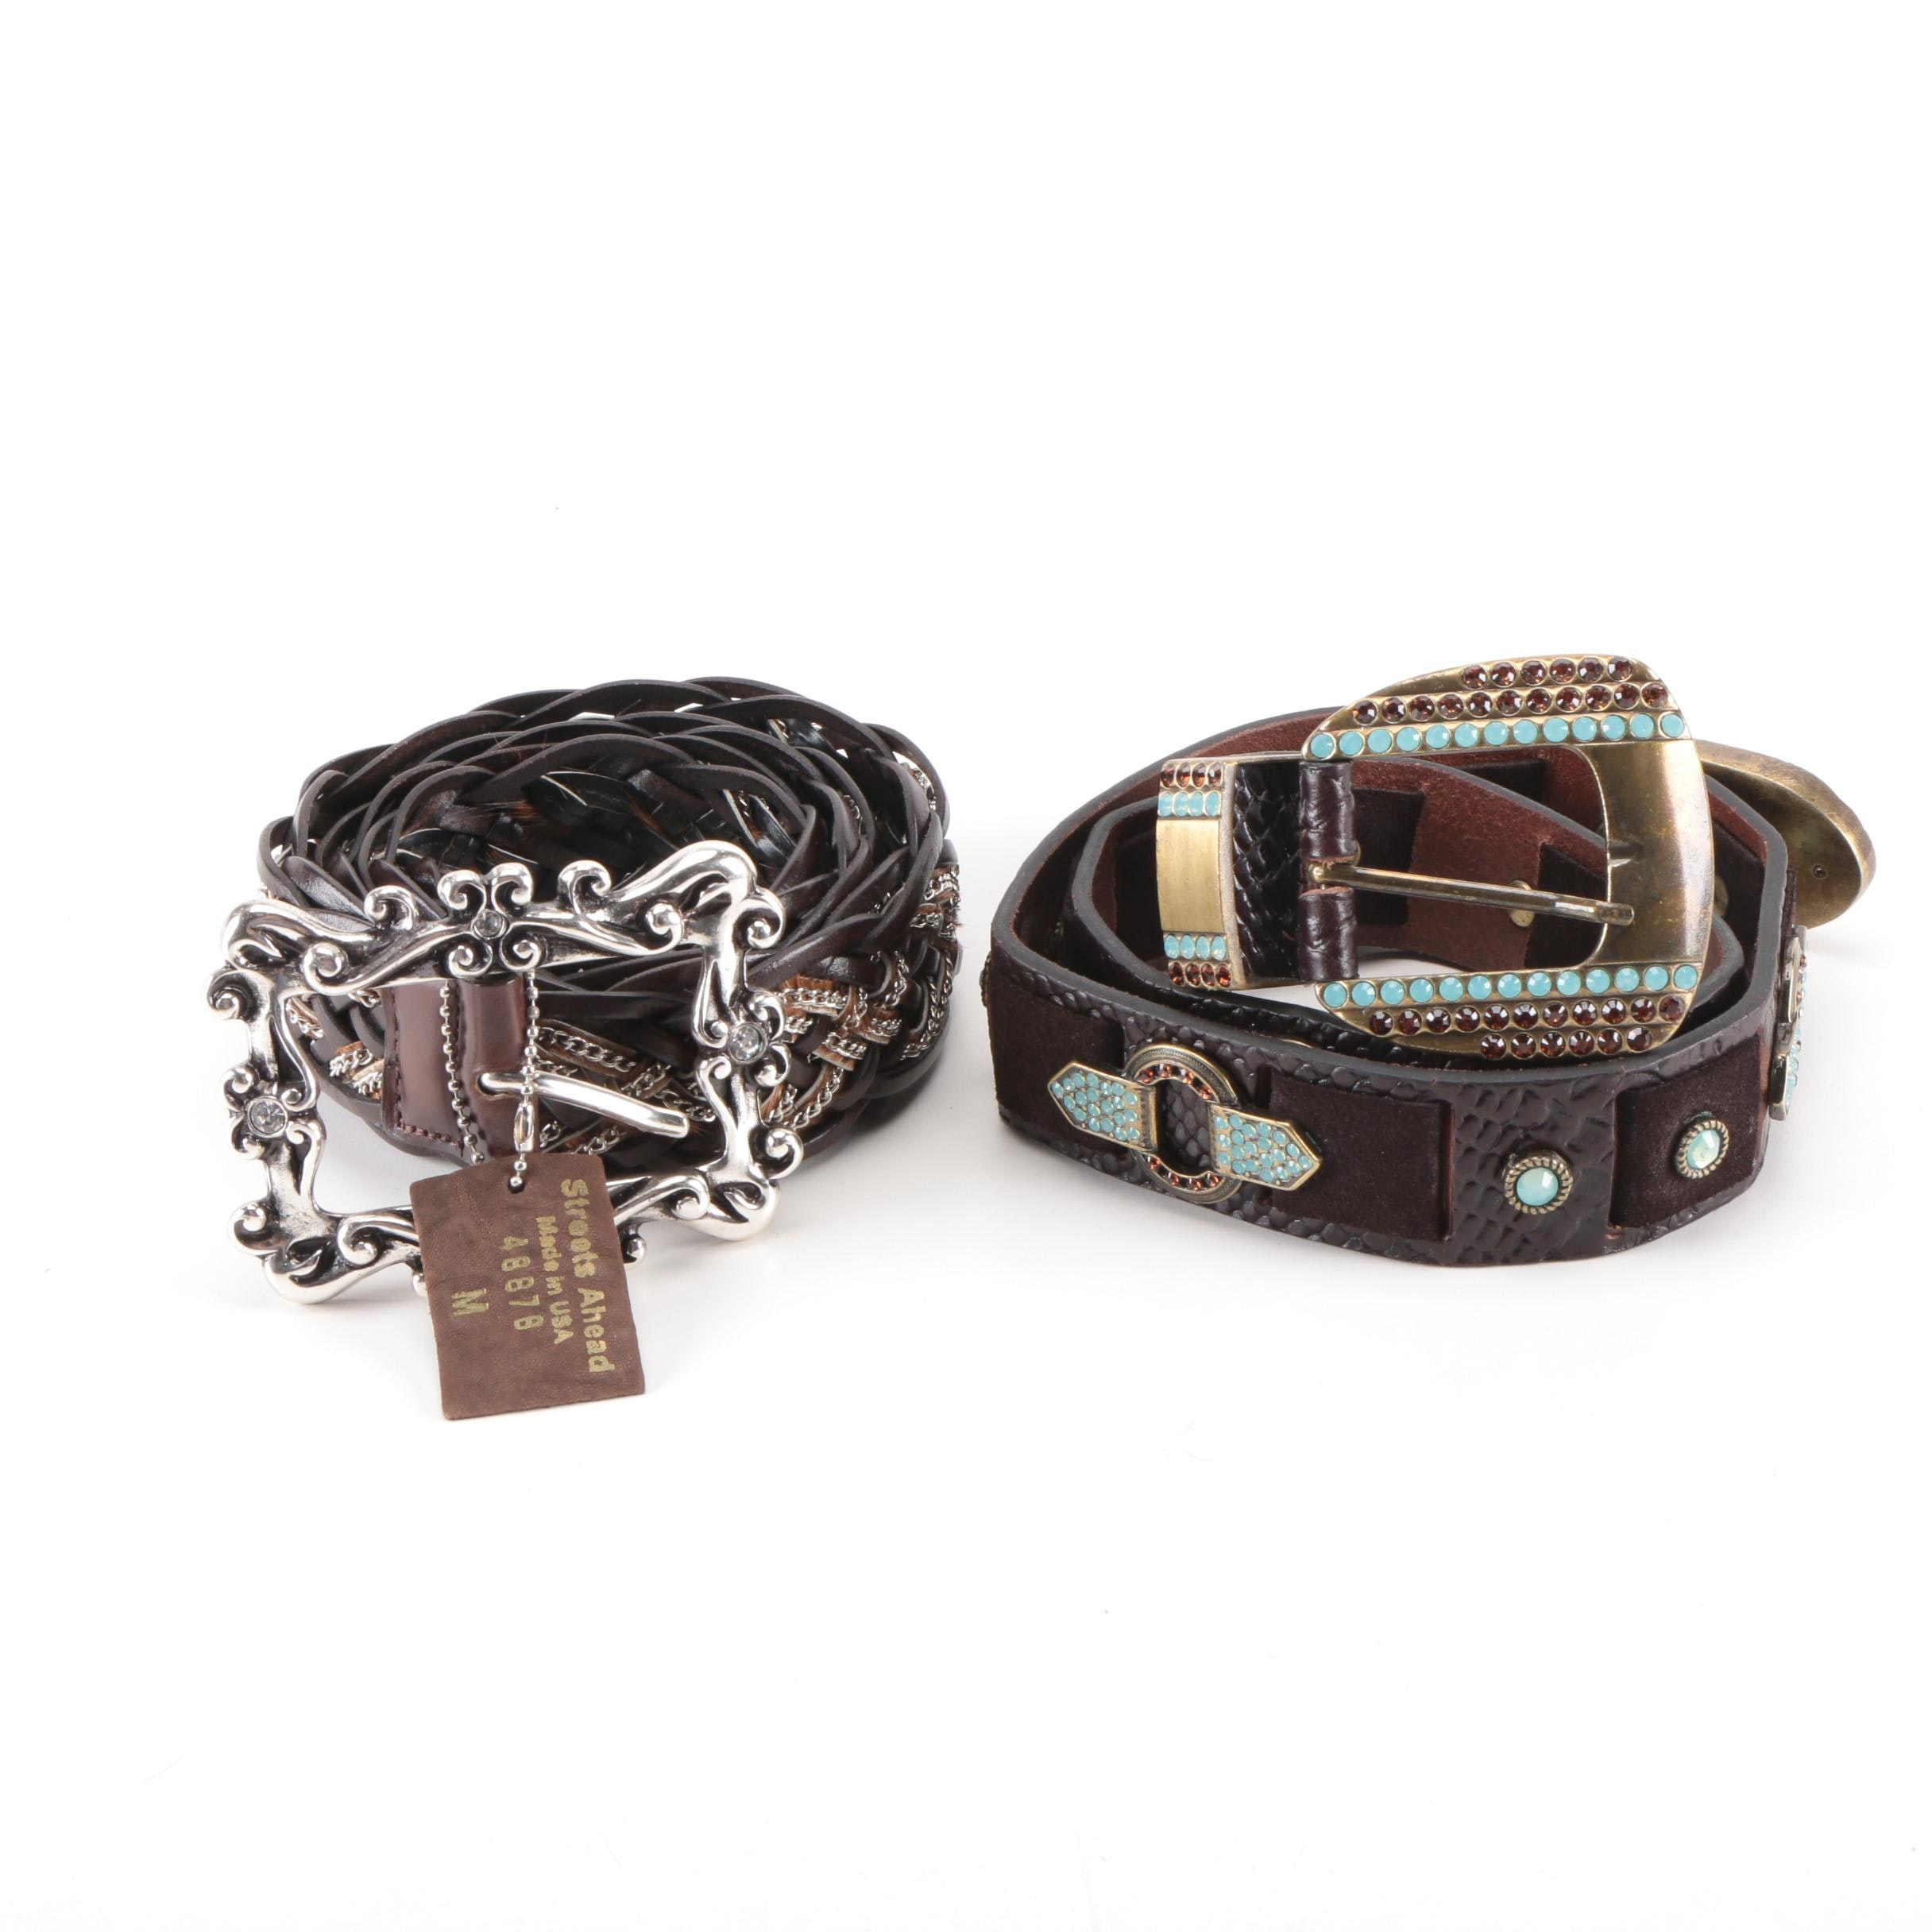 Two Leather Belts with Embellishments